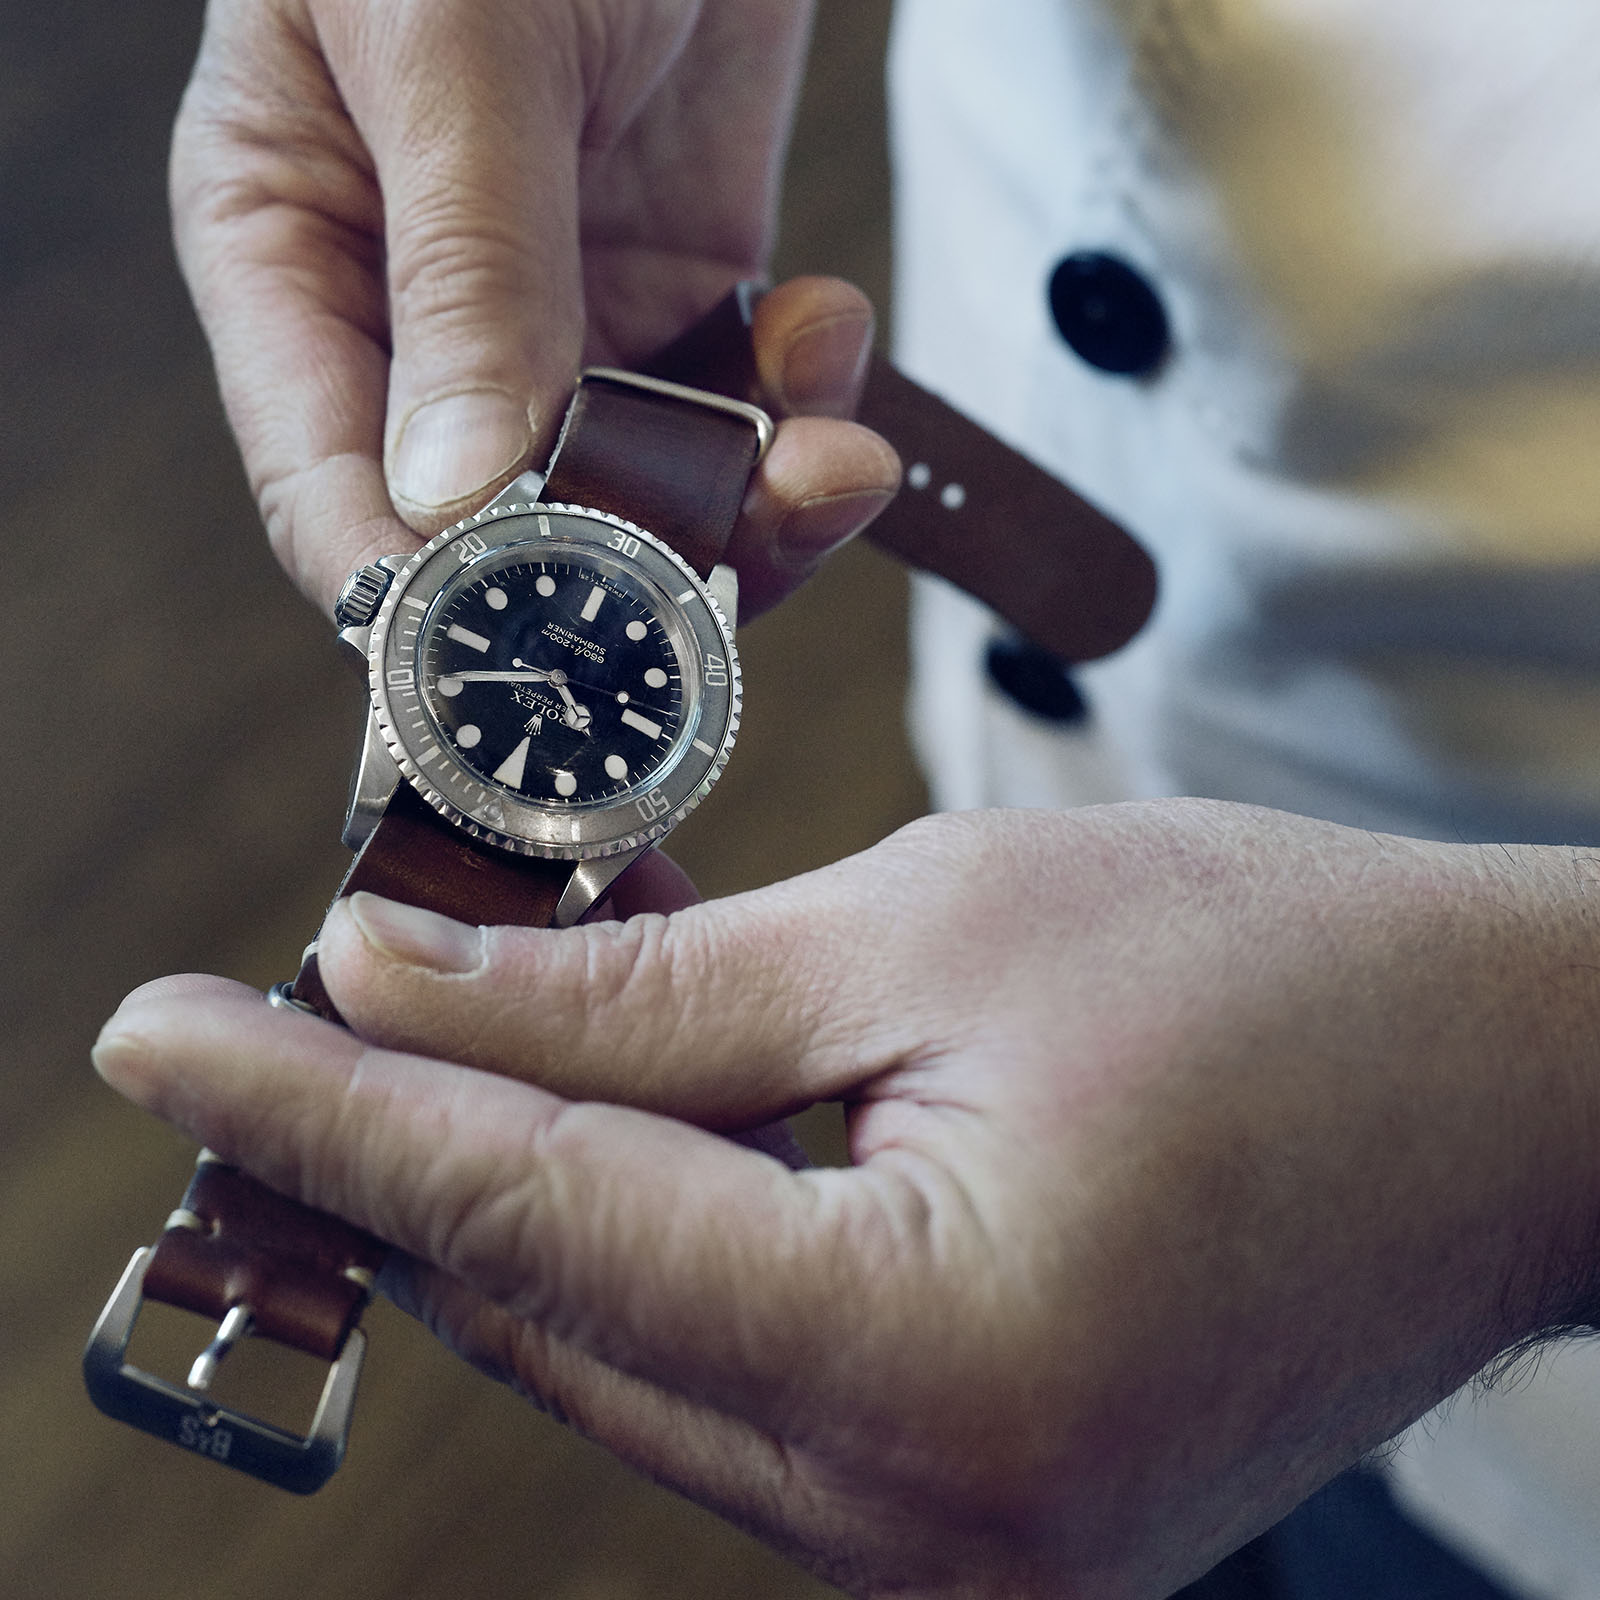 Bulang and Sons Strap Guide Rolex 5513c Faded Maxi Submariner